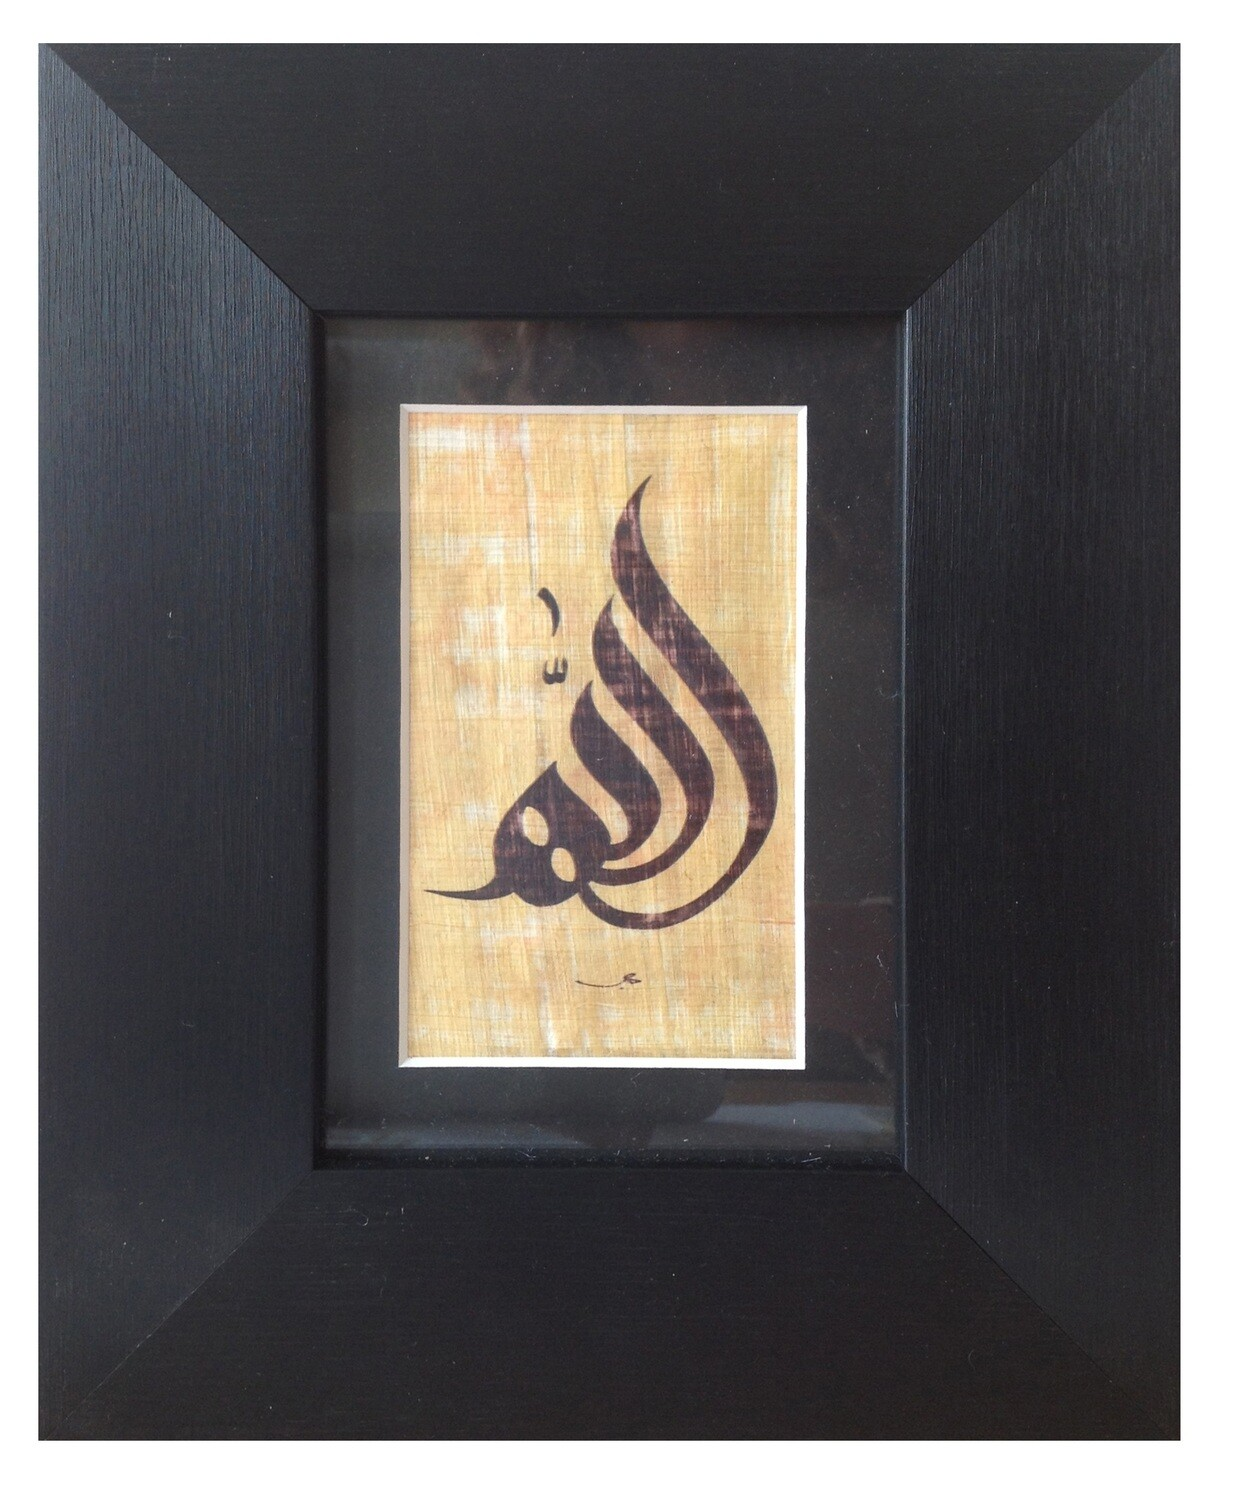 Allah Stylistic Calligraphy Design On Papyrus in Black Frame